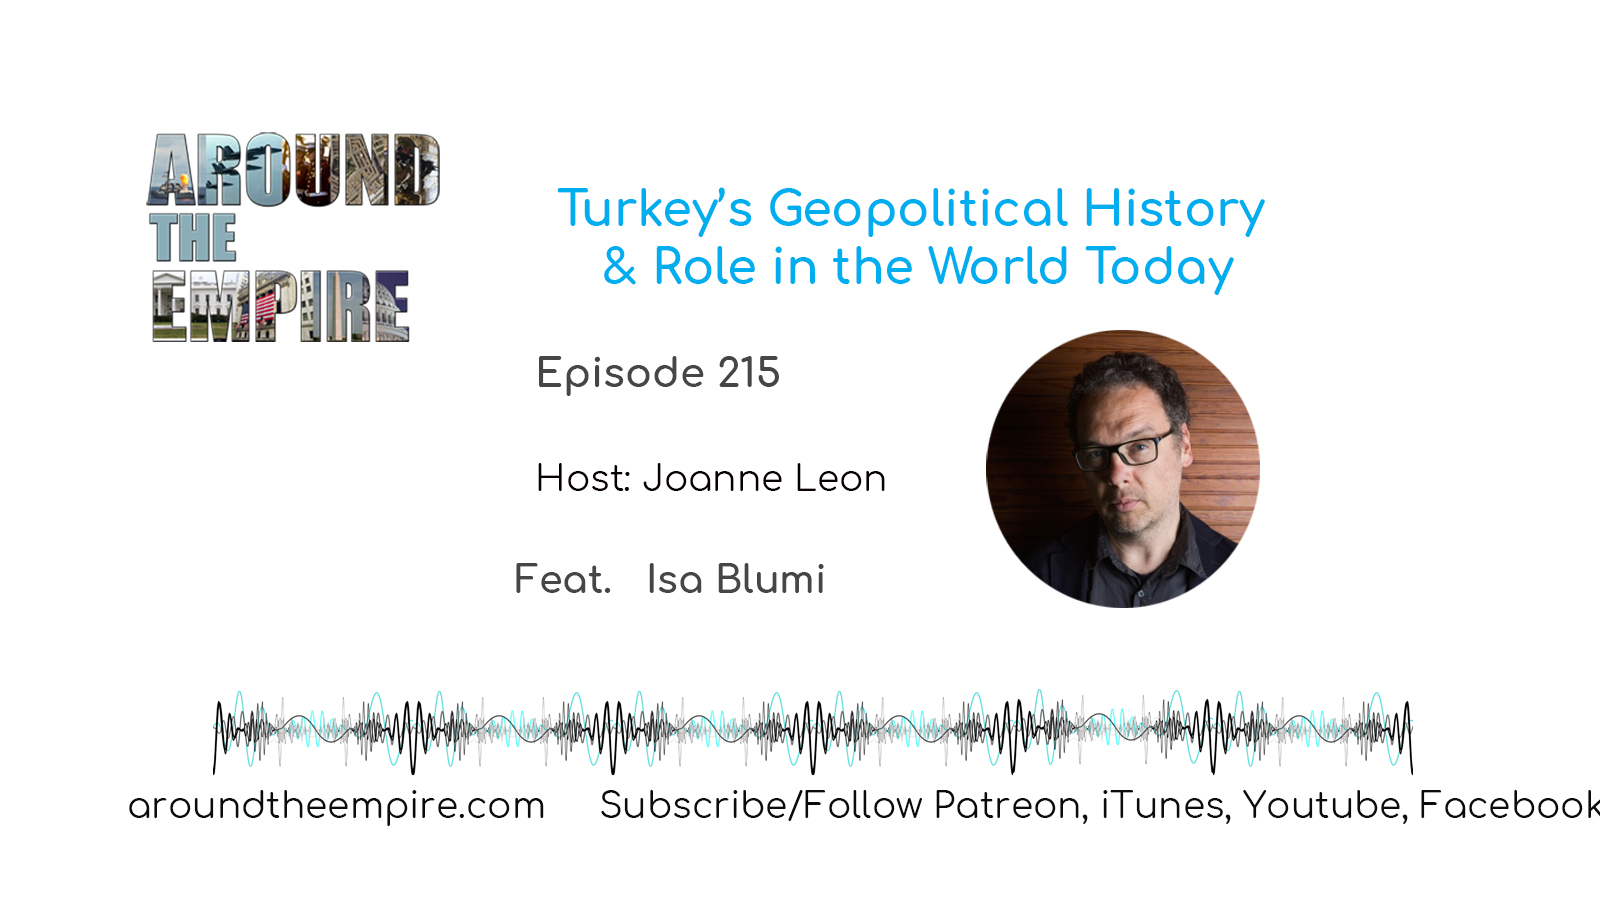 Ep 215 Turkey's Geopolitical History & Role in the World Today feat Isa Blumi